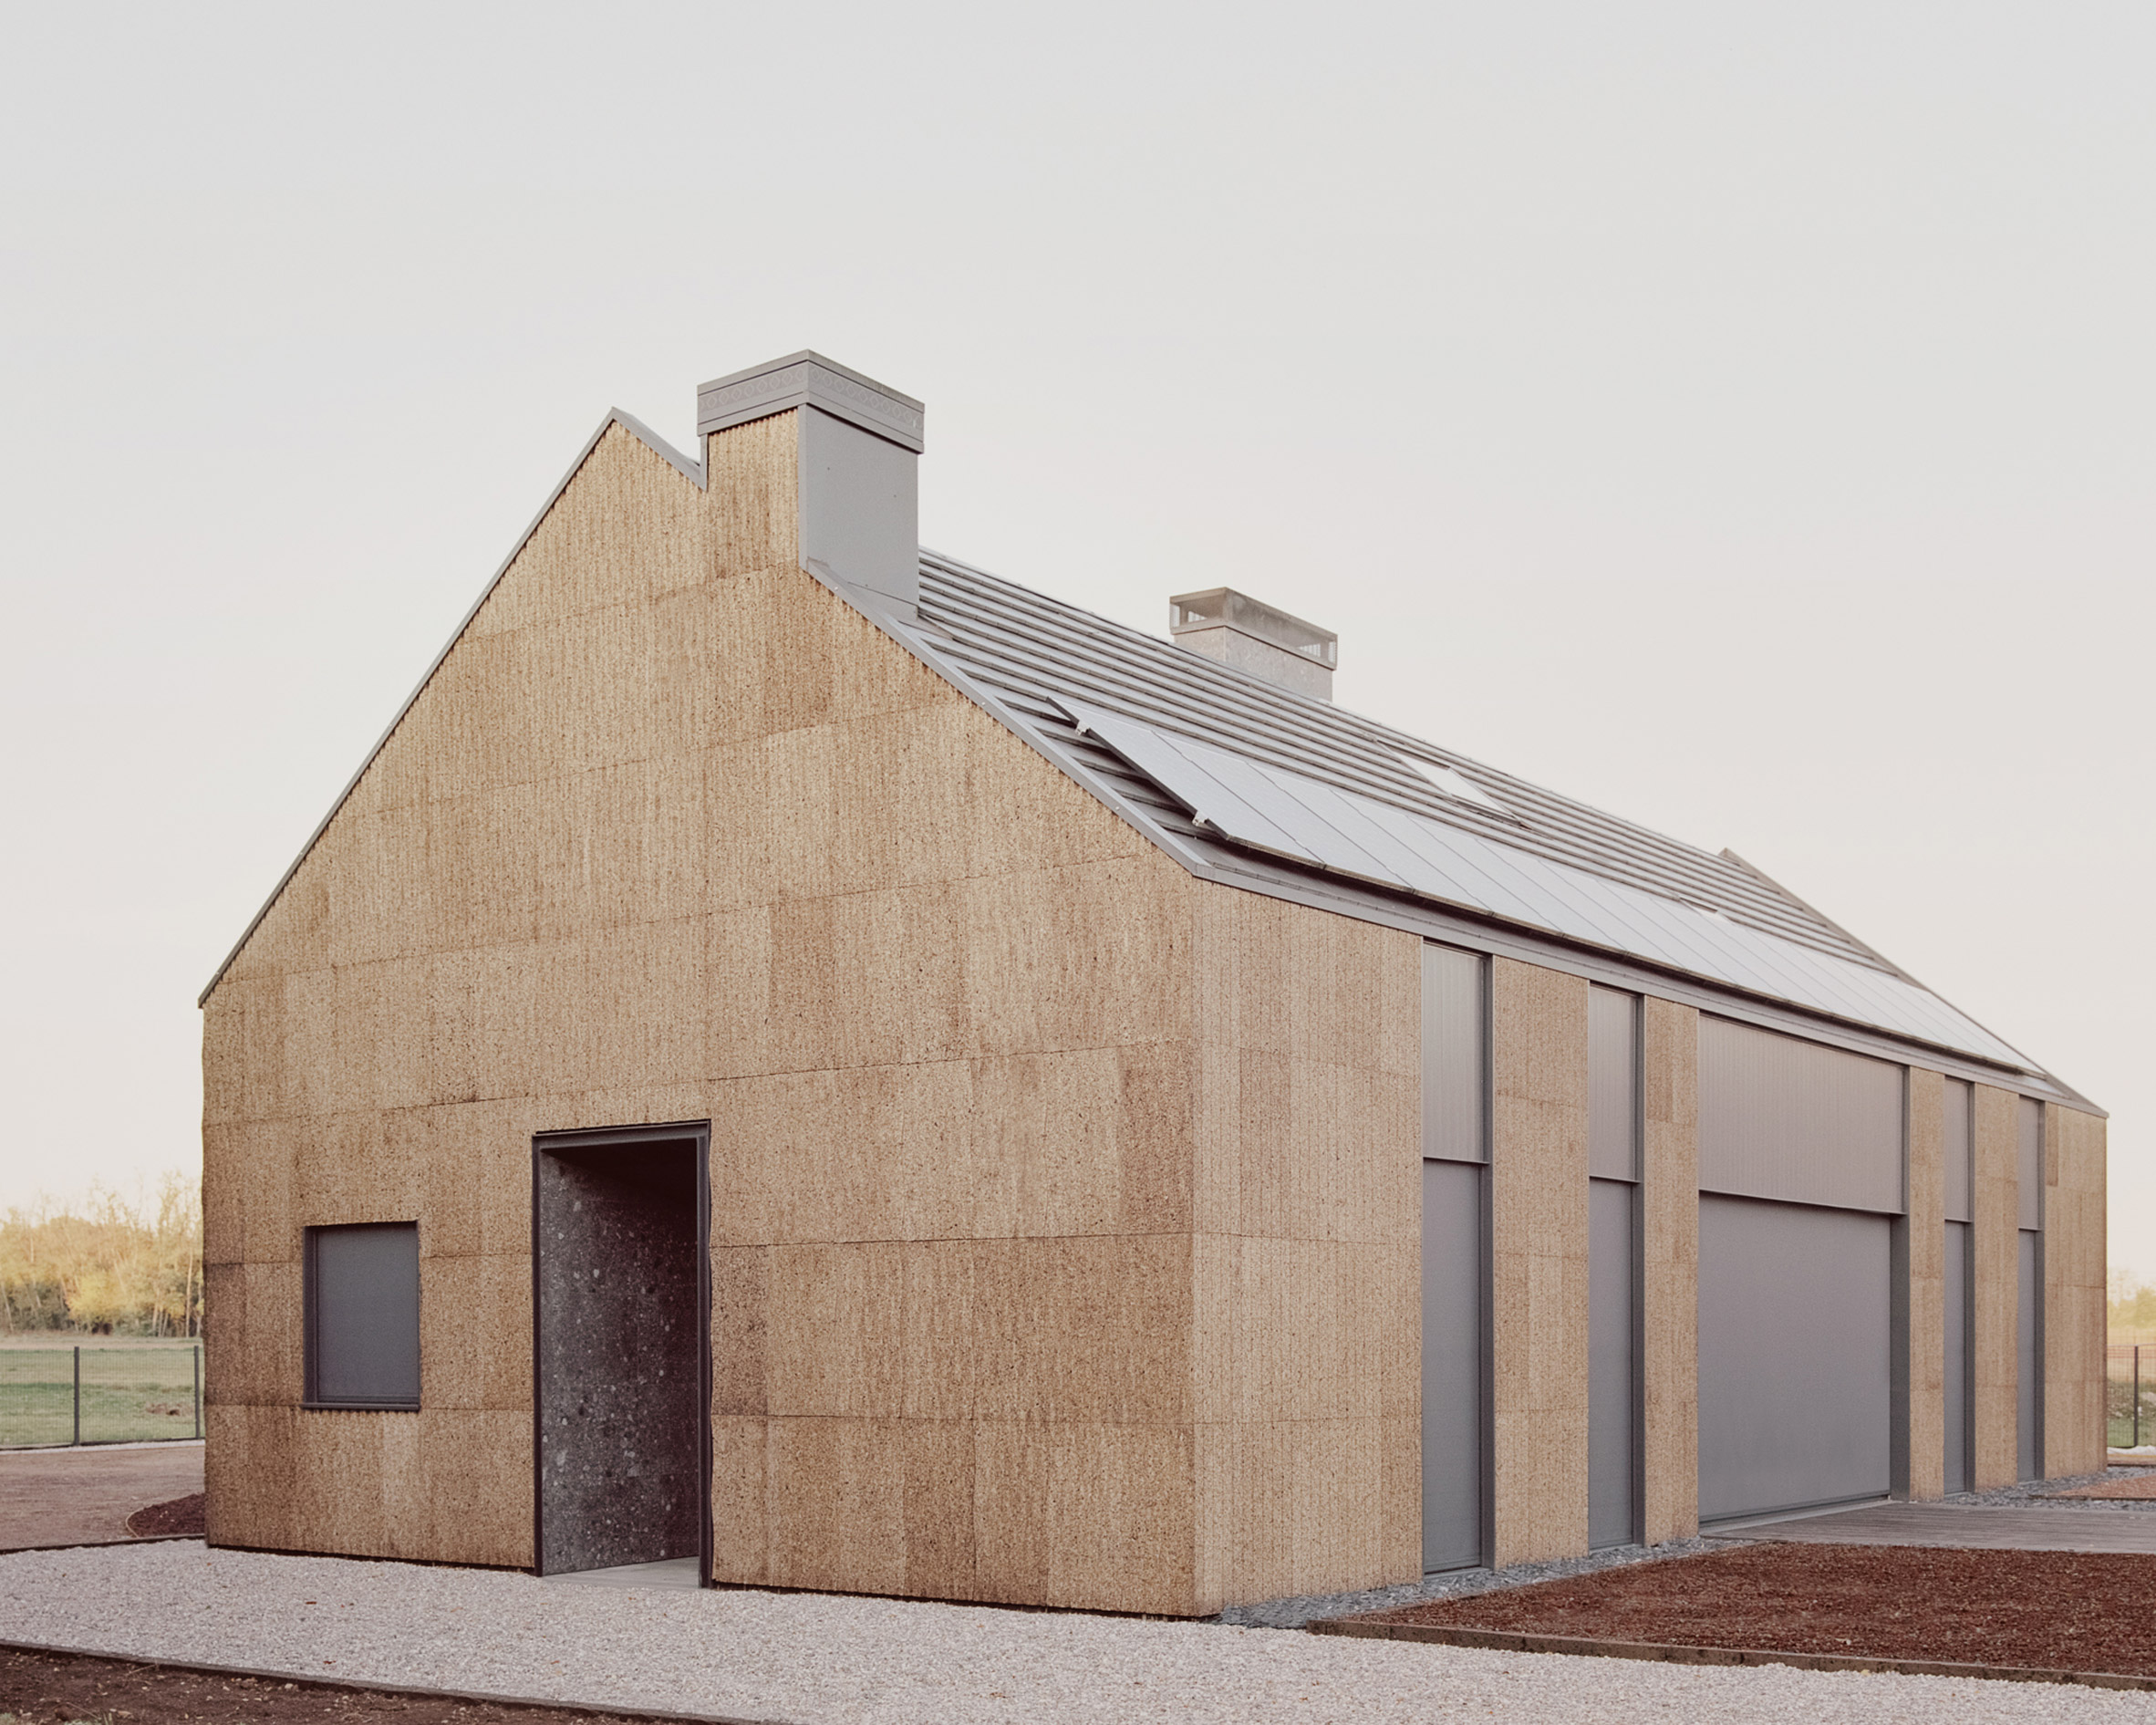 The exterior of The House of Wood, Straw and Cork by LCA Architetti